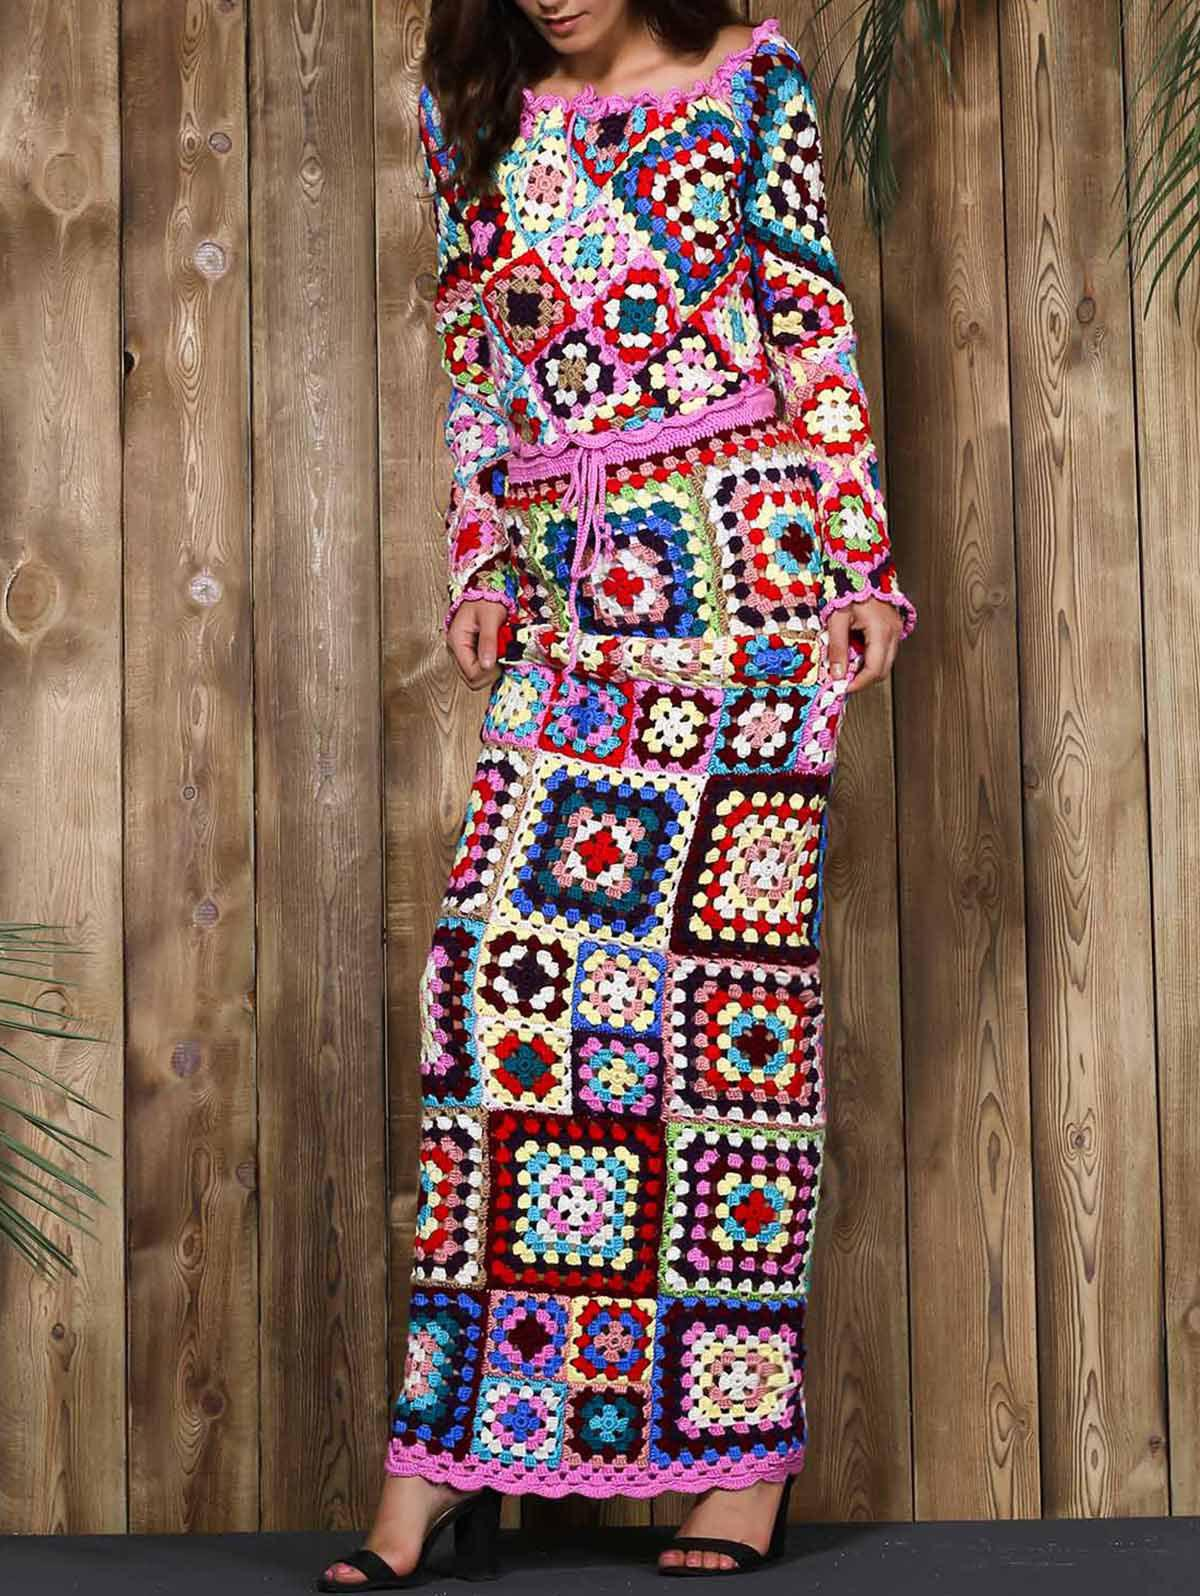 Limited Edition Off-The-Shoulder Granny SquaresCrochet Tank Top+Maxi Skirt For Women - COLORMIX ONE SIZE(FIT SIZE XS TO M)